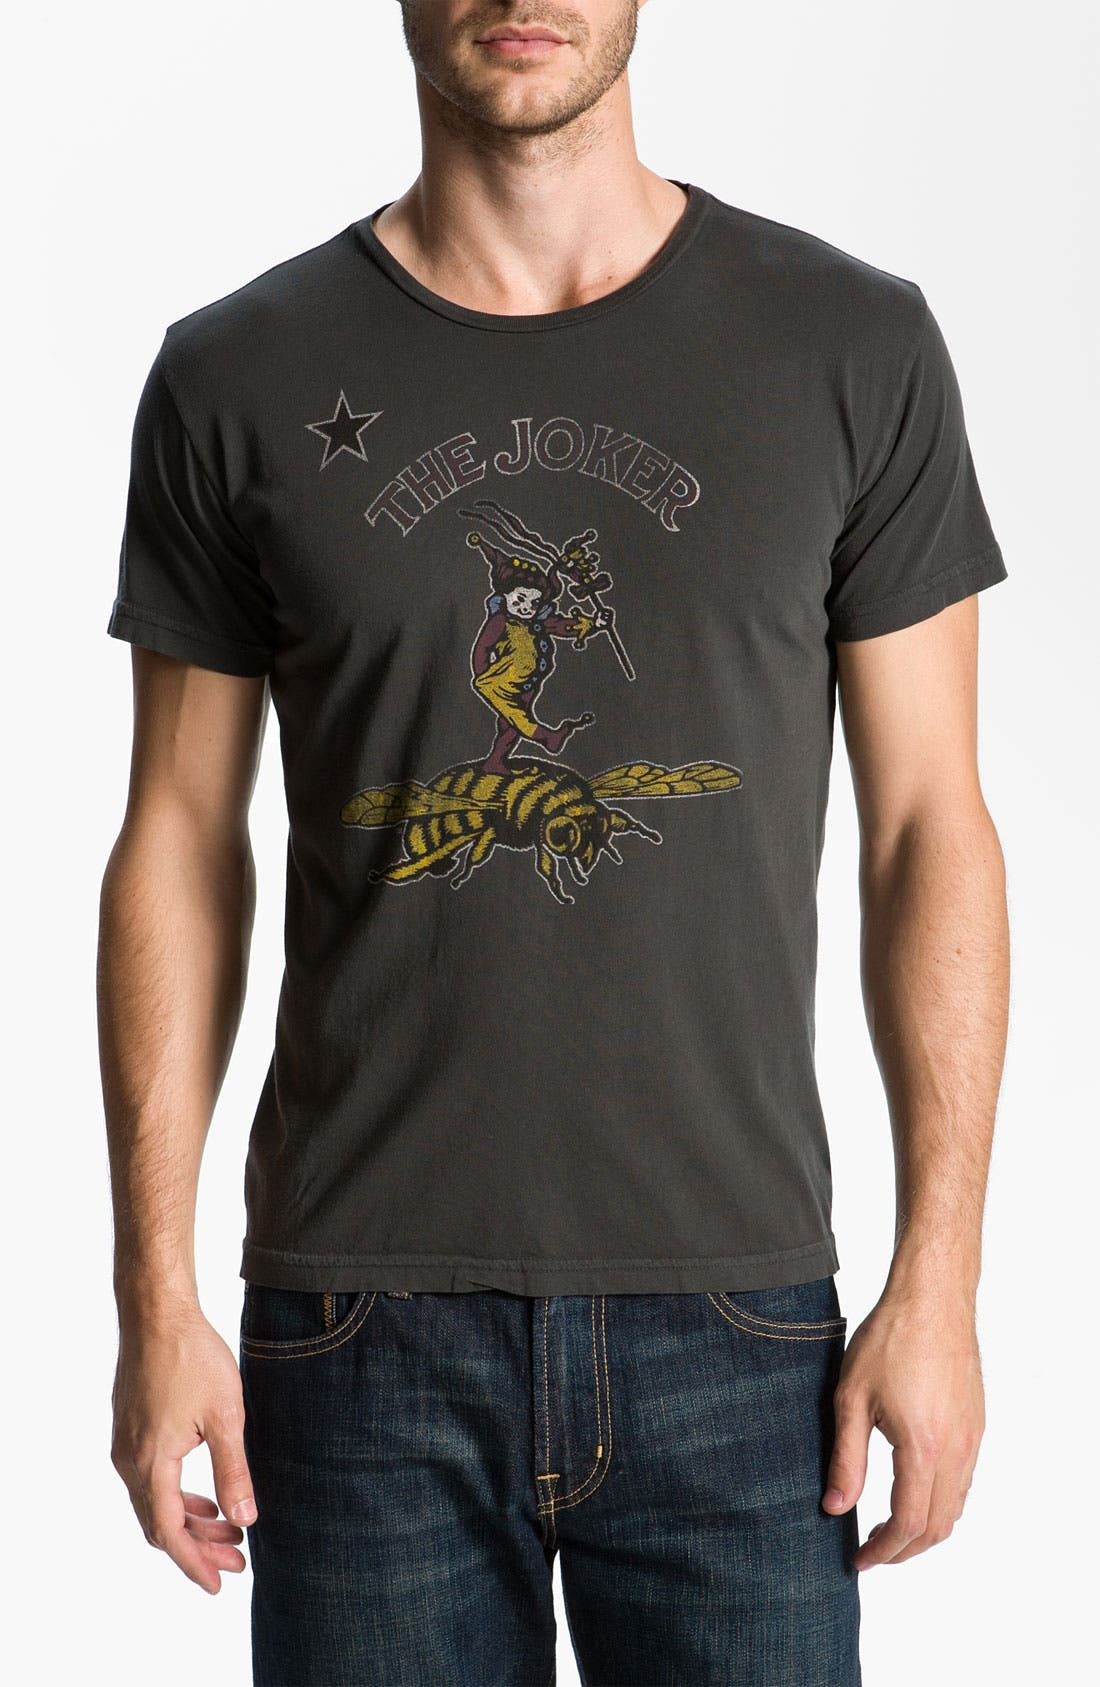 Main Image - Jacks & Jokers 'Joker Bee' T-Shirt